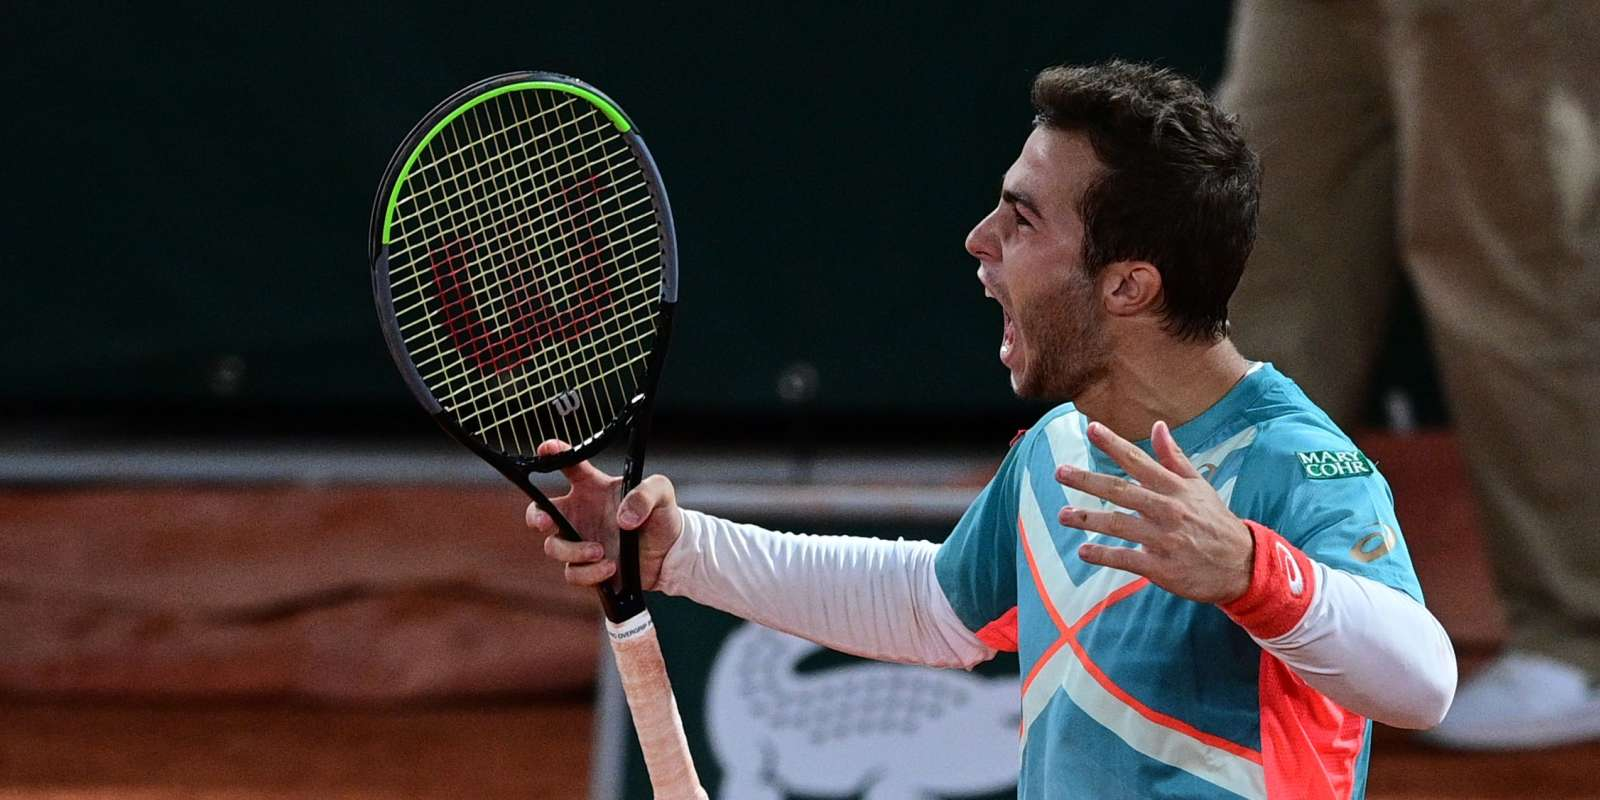 France's Hugo Gaston reacts as he plays against Austria's Dominic Thiem during their men's singles fourth round tennis match on Day 8 of The Roland Garros 2020 French Open tennis tournament in Paris on October 4, 2020. / AFP / MARTIN BUREAU